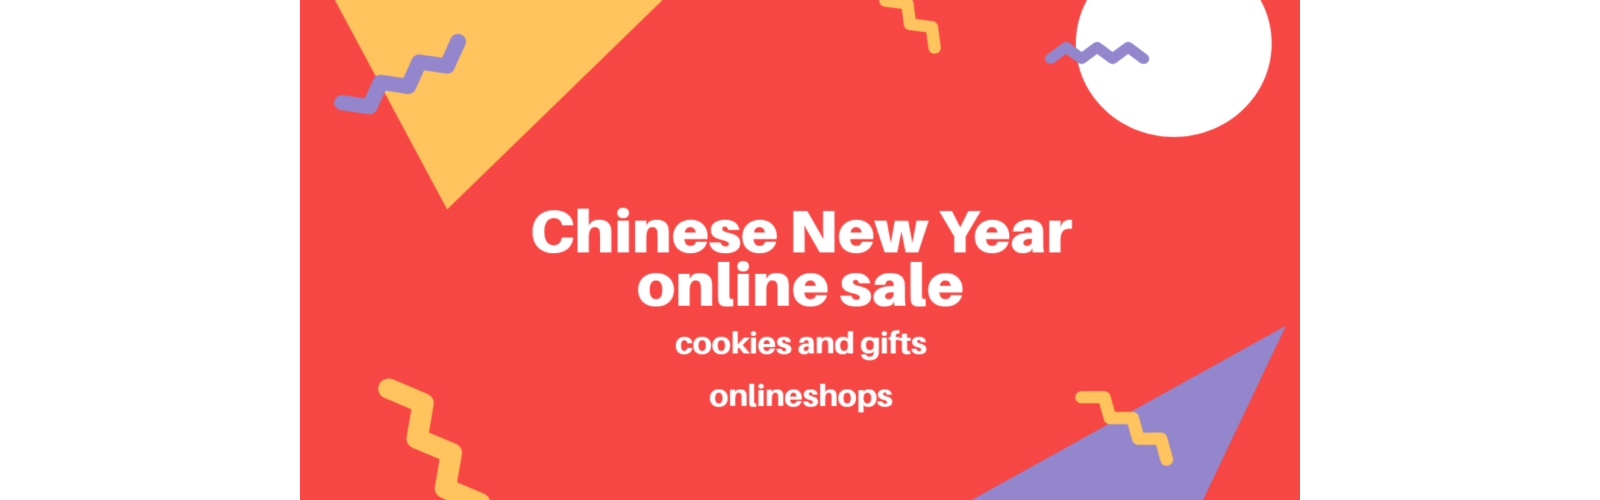 Chinese New Year Online Sales